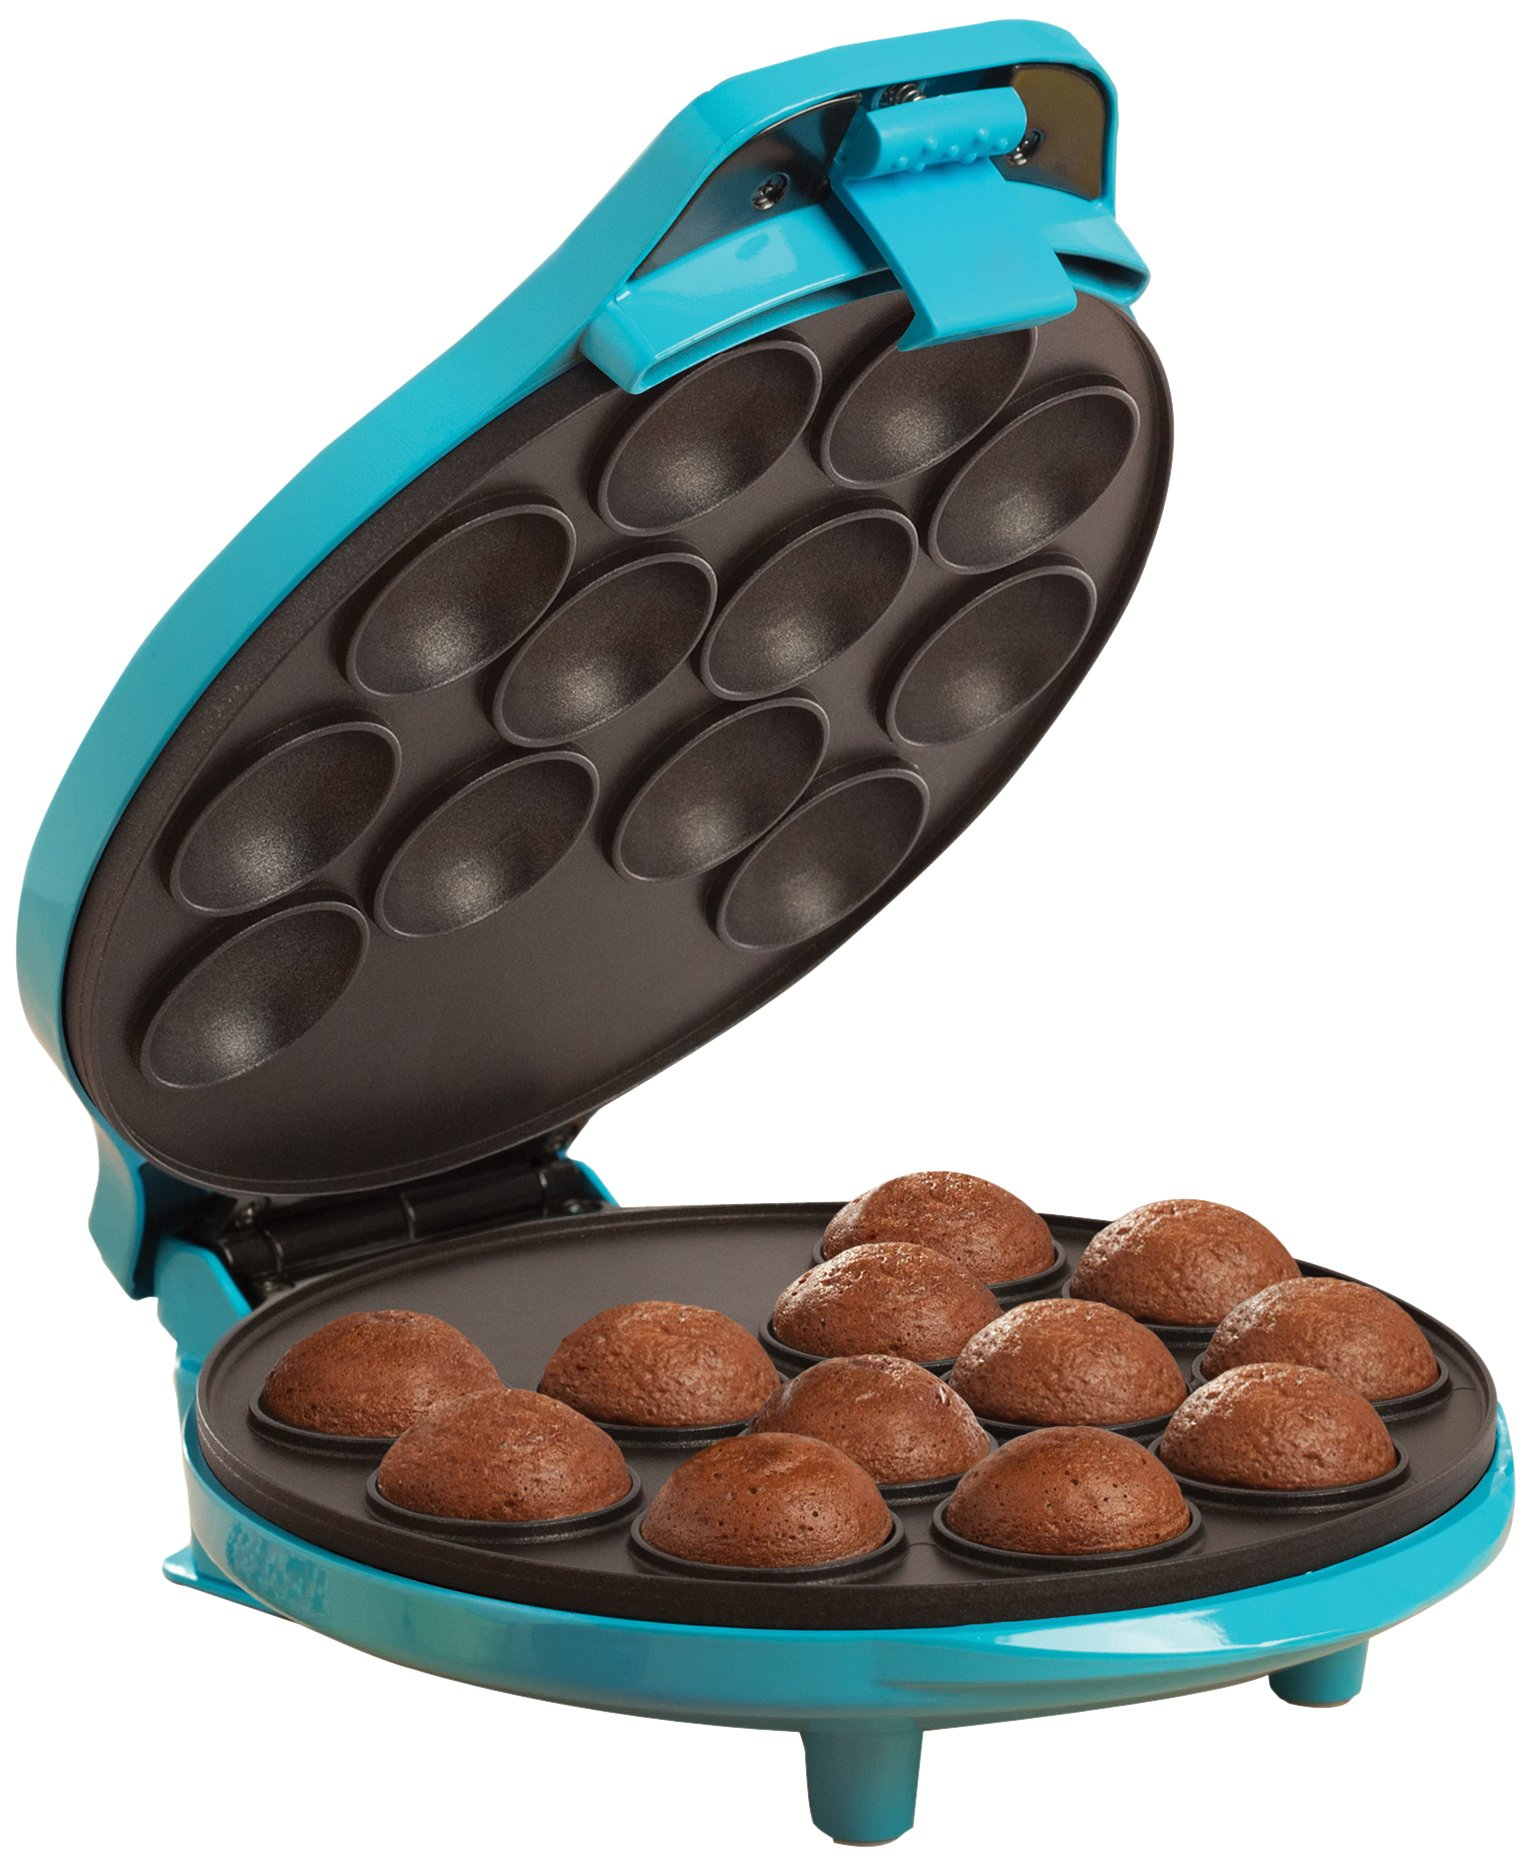 BELLA 13547 Cake Pop & Donut Hole Maker, Turquoise by BELLA